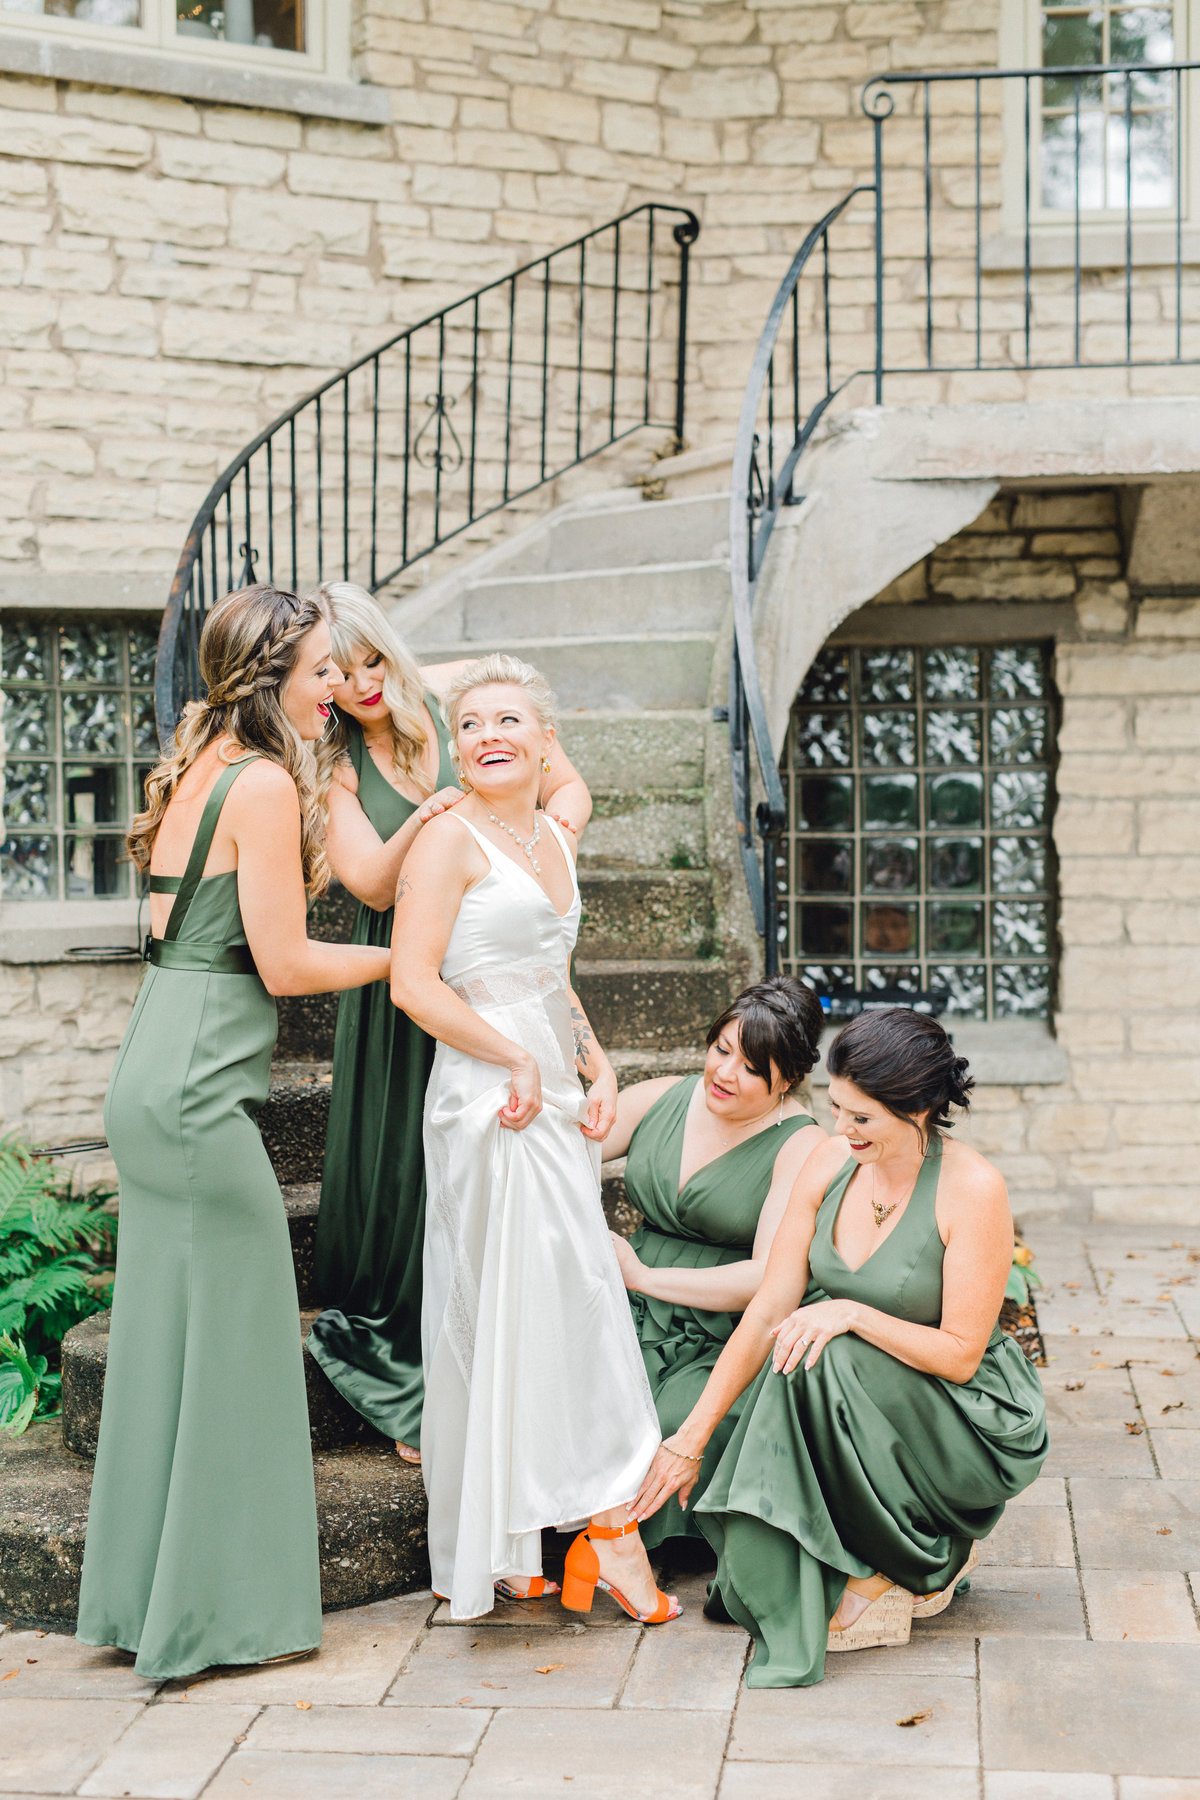 Ned-Ashton-House-Wedding-Ellen+Mack-3221